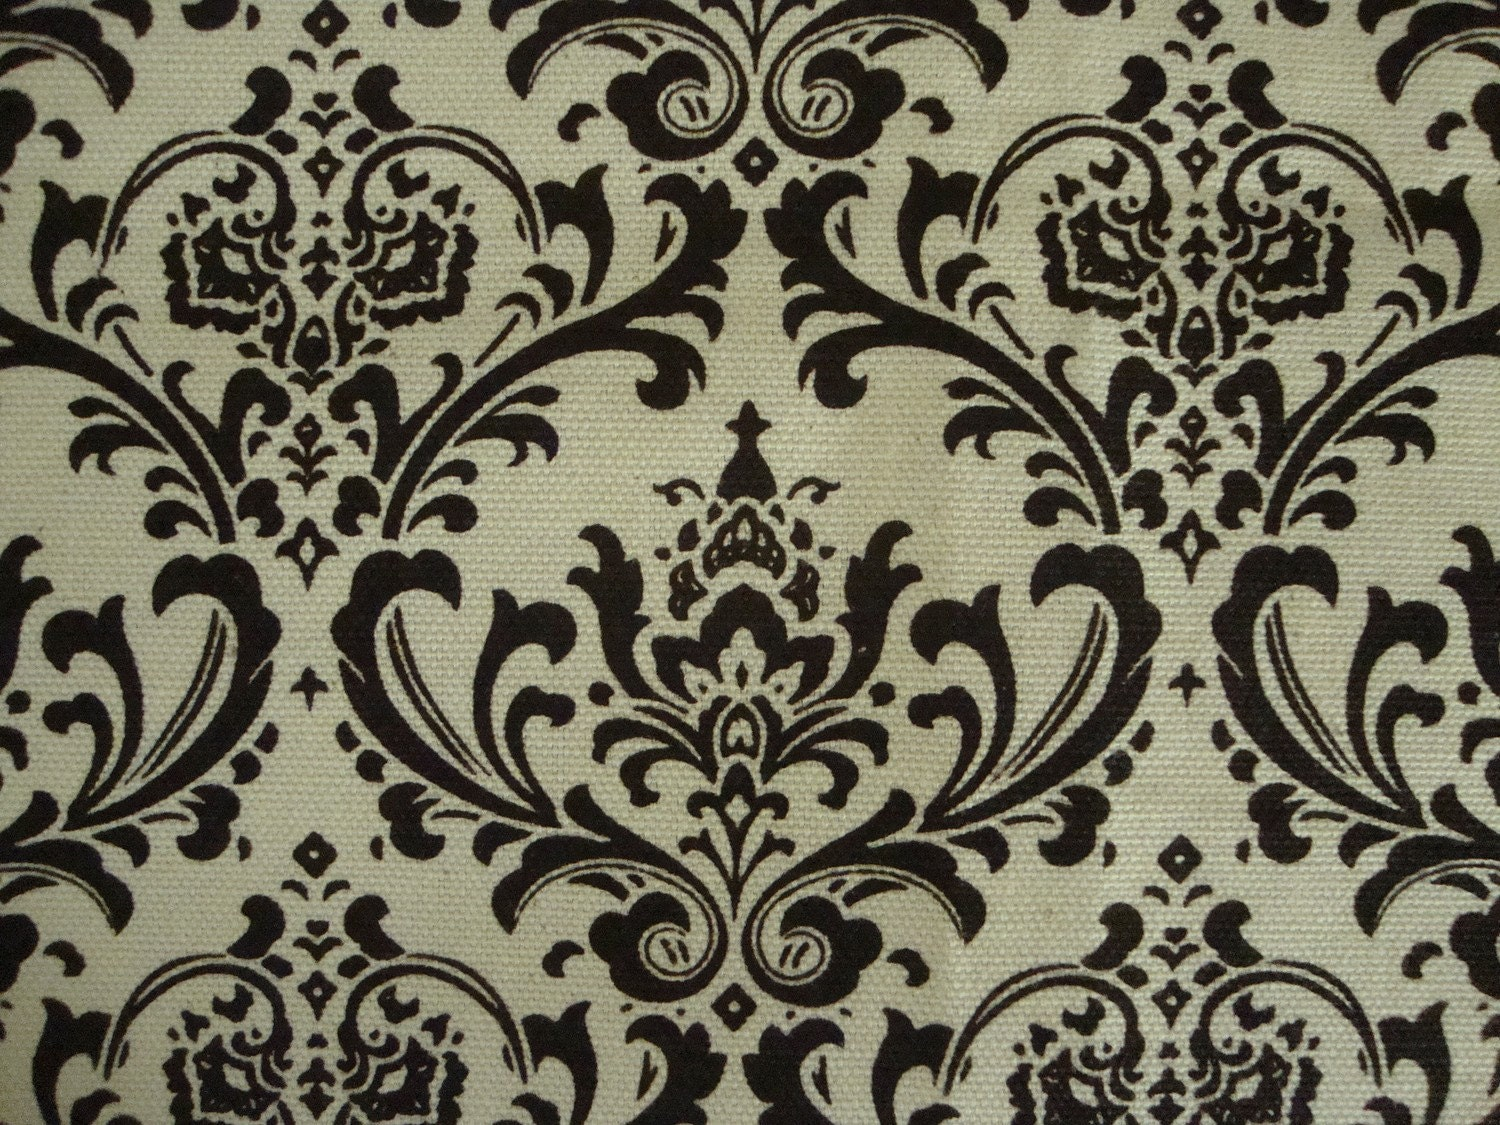 upholstery fabric black and white baroque design cotton. Black Bedroom Furniture Sets. Home Design Ideas